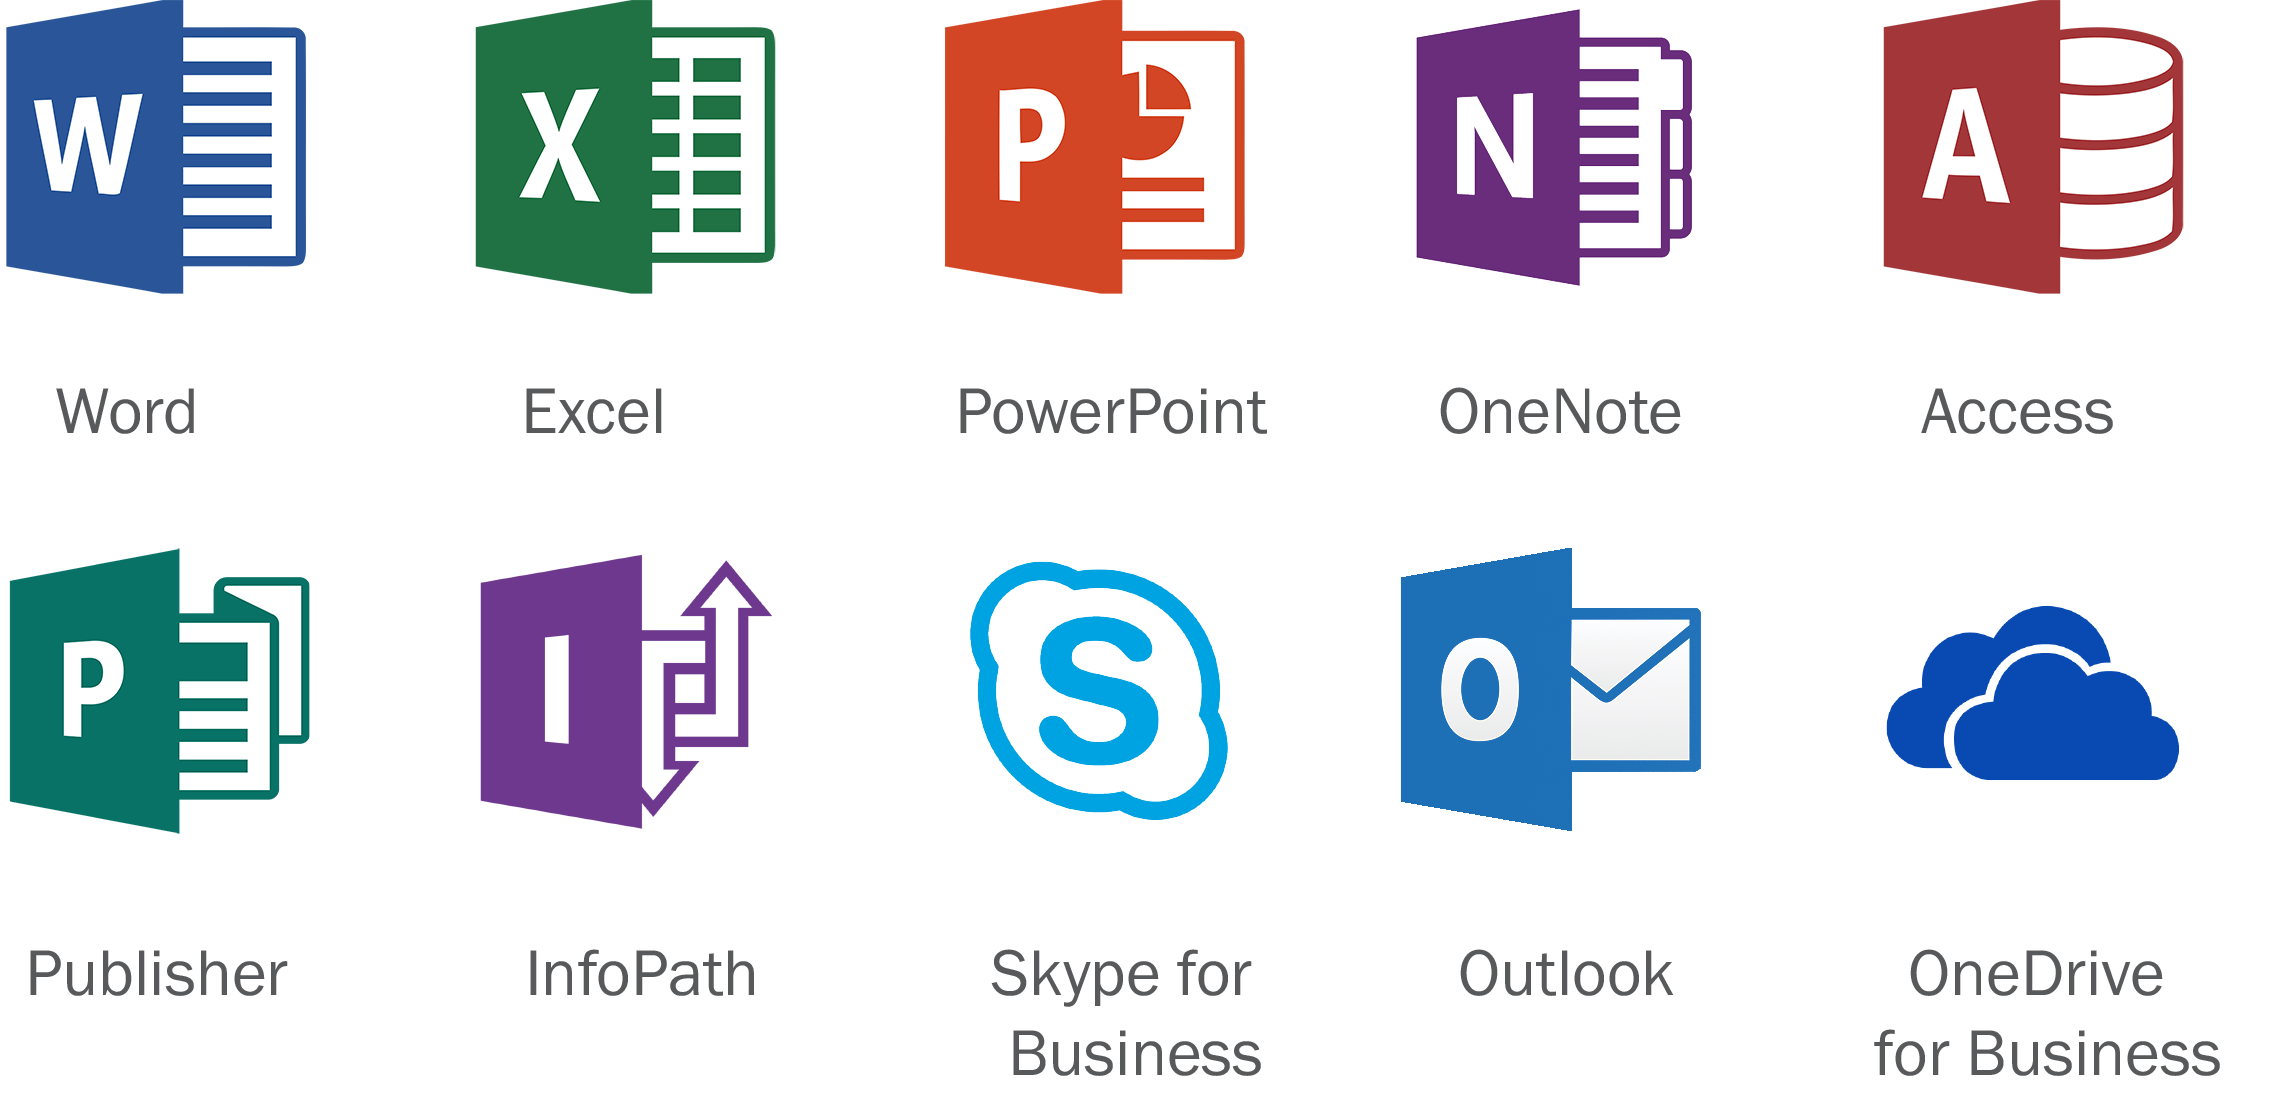 We are MS Office setup support and service provider team